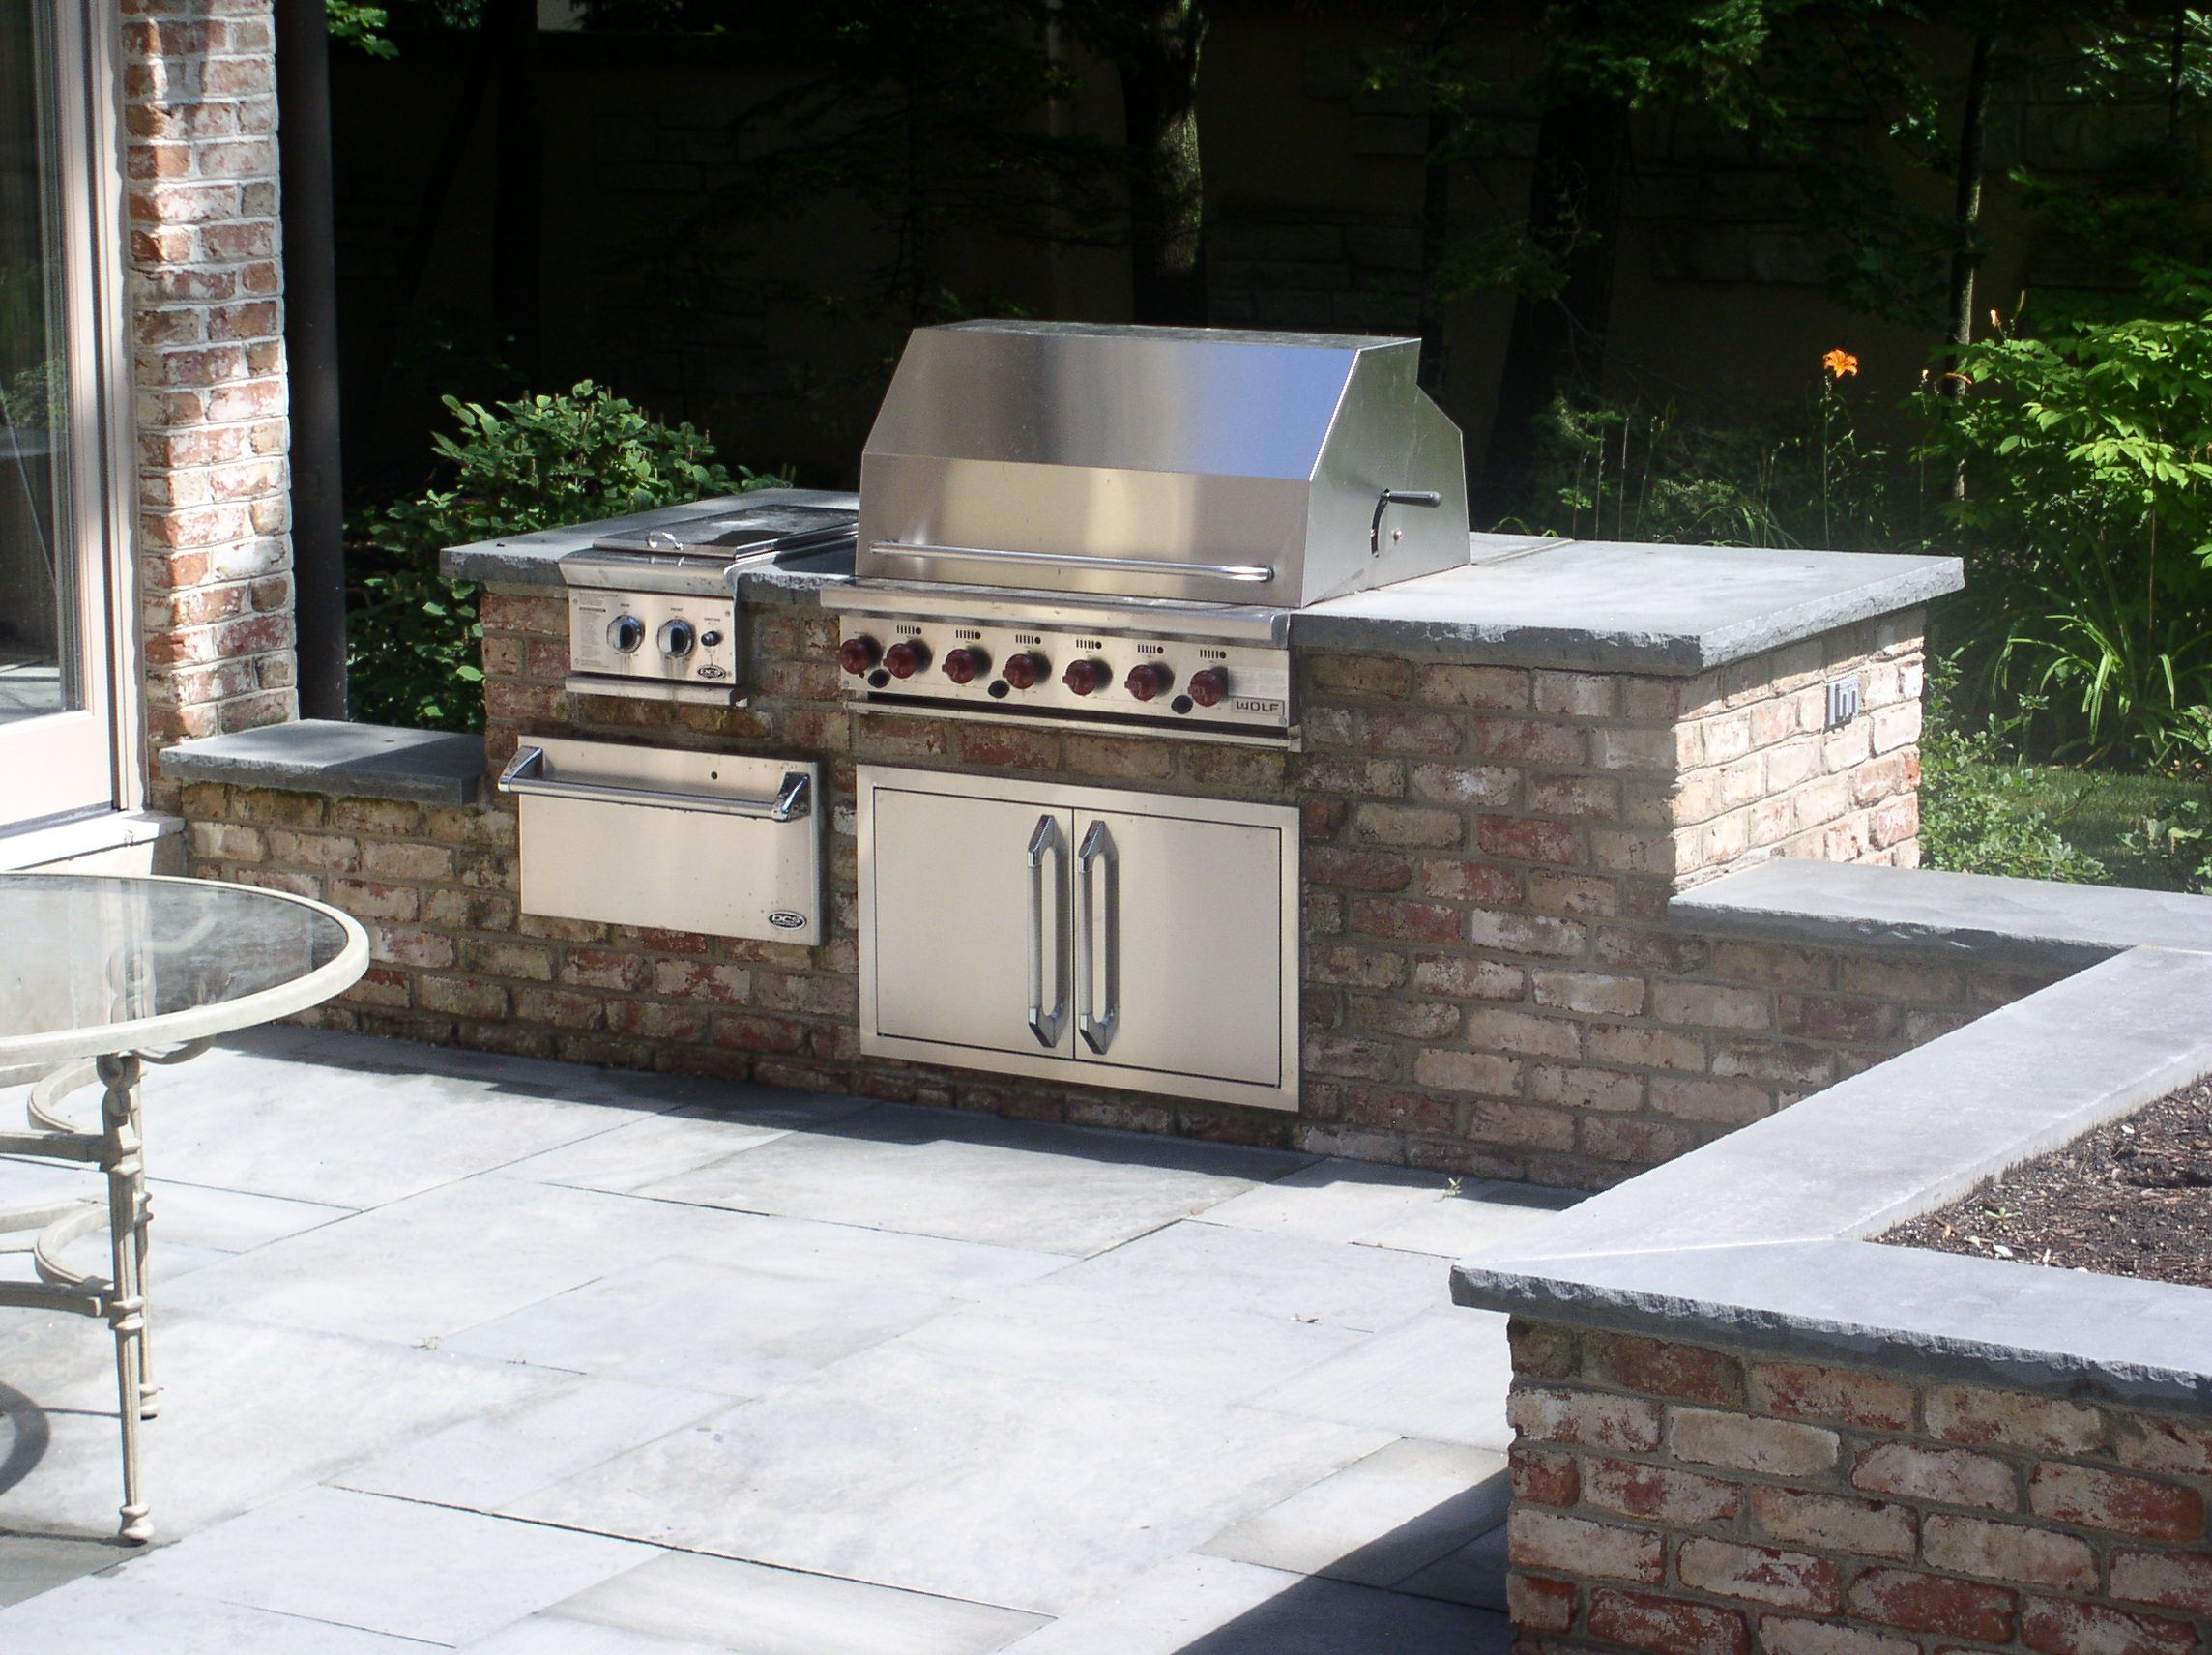 outdoor patio grill station - Google Search | Outdoor ... on Patio Grilling Area id=30932